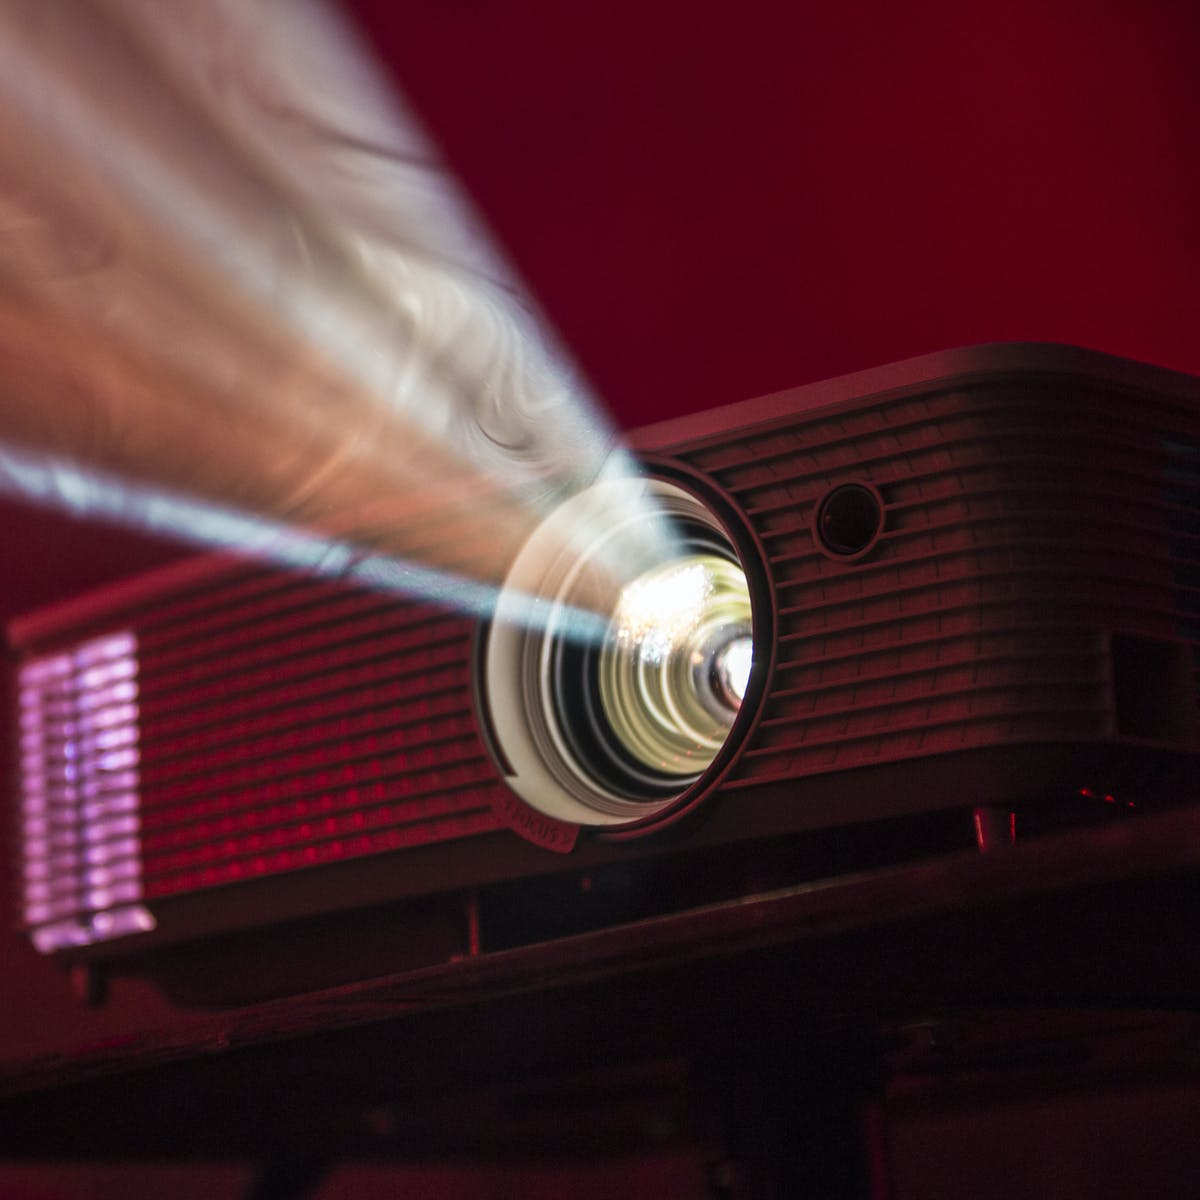 TV vs. Projector? It Should Really Be No Contest by Now